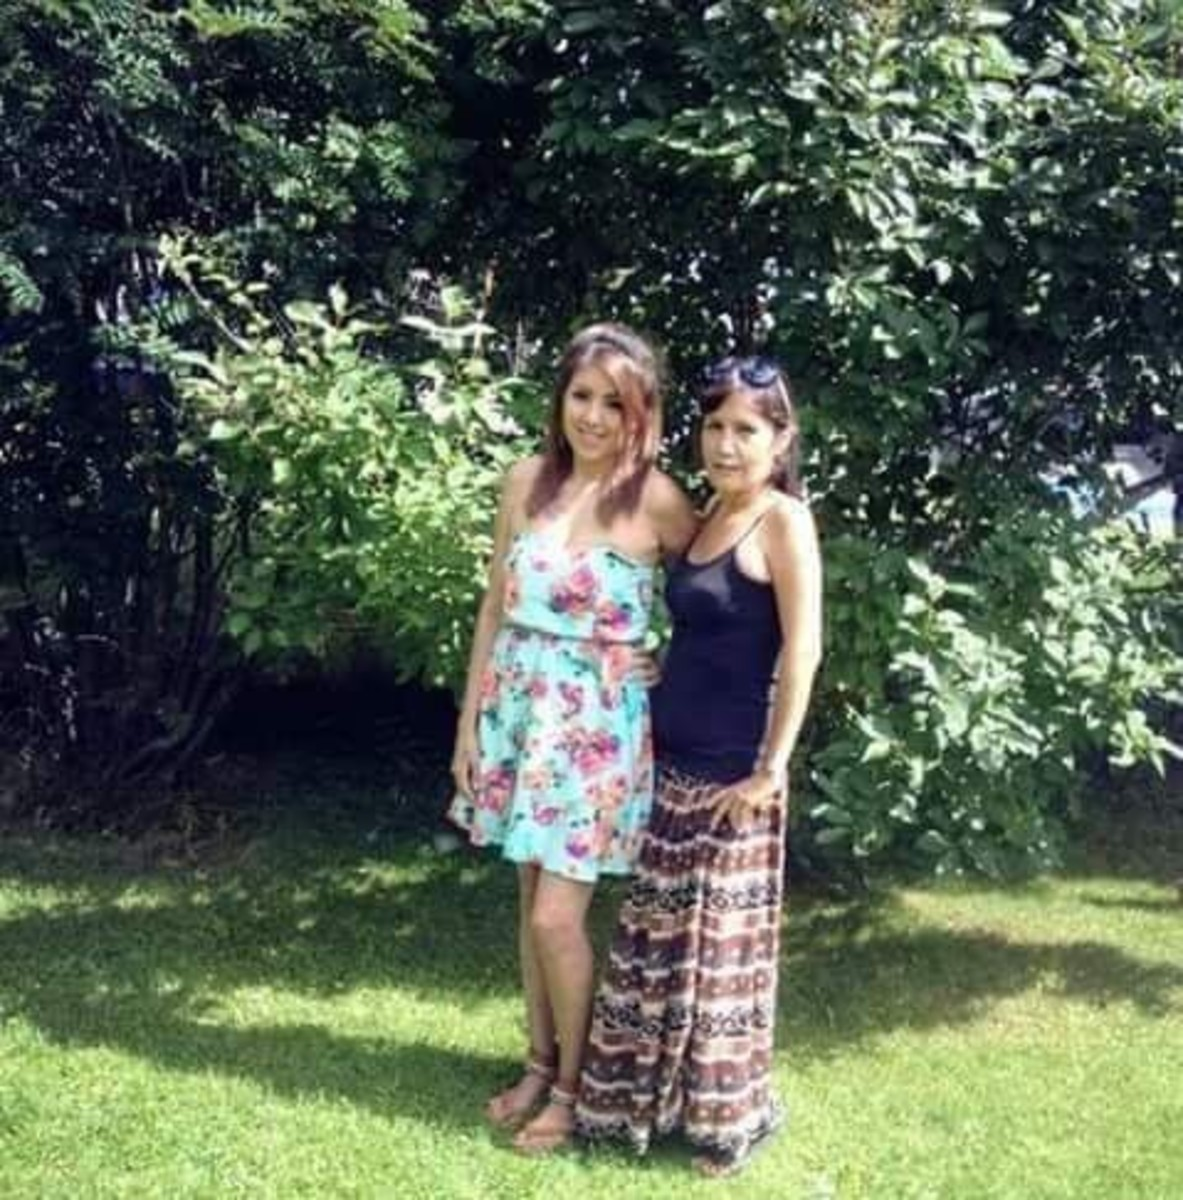 Nicole Gladue-Weesemat and her mother Gloria. Gladue disappeared from her home community of Wabasca, Alberta, in the fall of 2015. On June 27th, it will be one year since the worst day of Nicole Gladue-Weesemat's life. A Royal Canadian Mounted Police officer came to tell her that her beloved mother's bones were found thousands of miles away in rural Manitoba, CA. (submitted by Nicole Gladue-Weesemat)